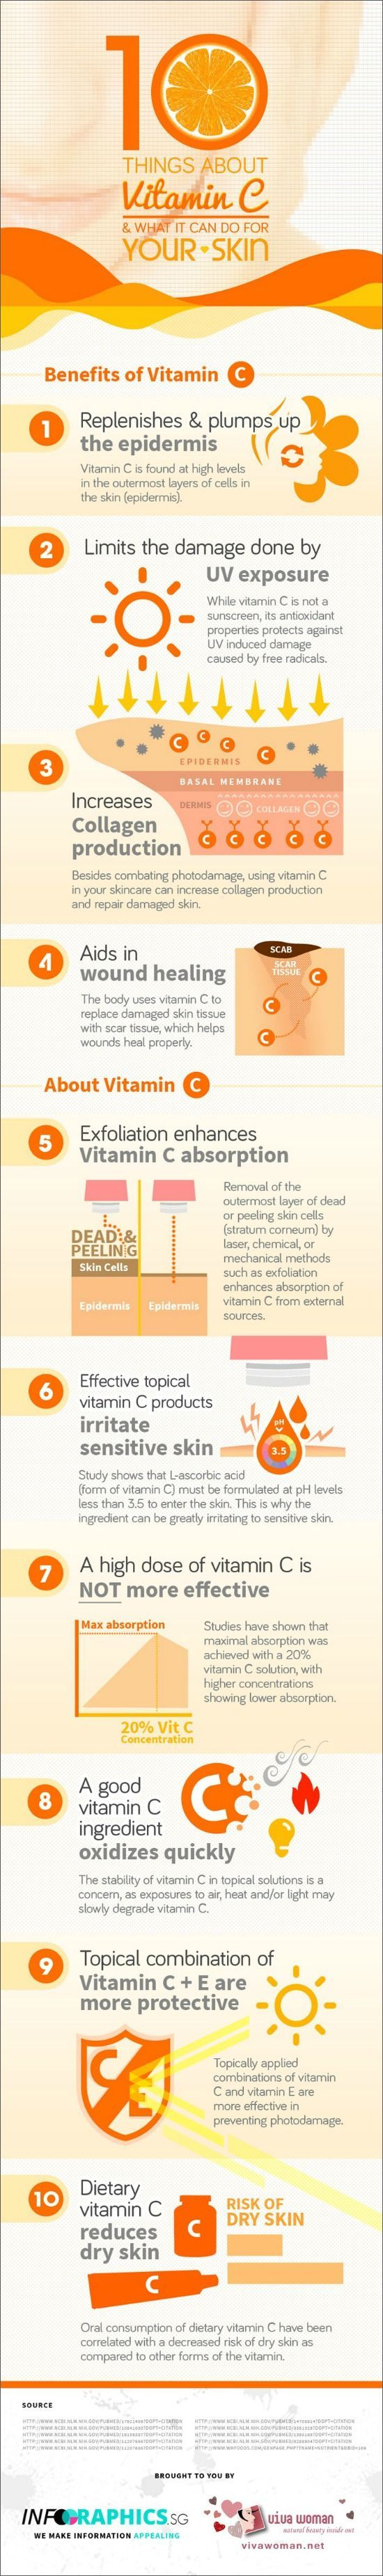 10 things about vitamin C for skin. #VitaminC #Collagen #Antiaging